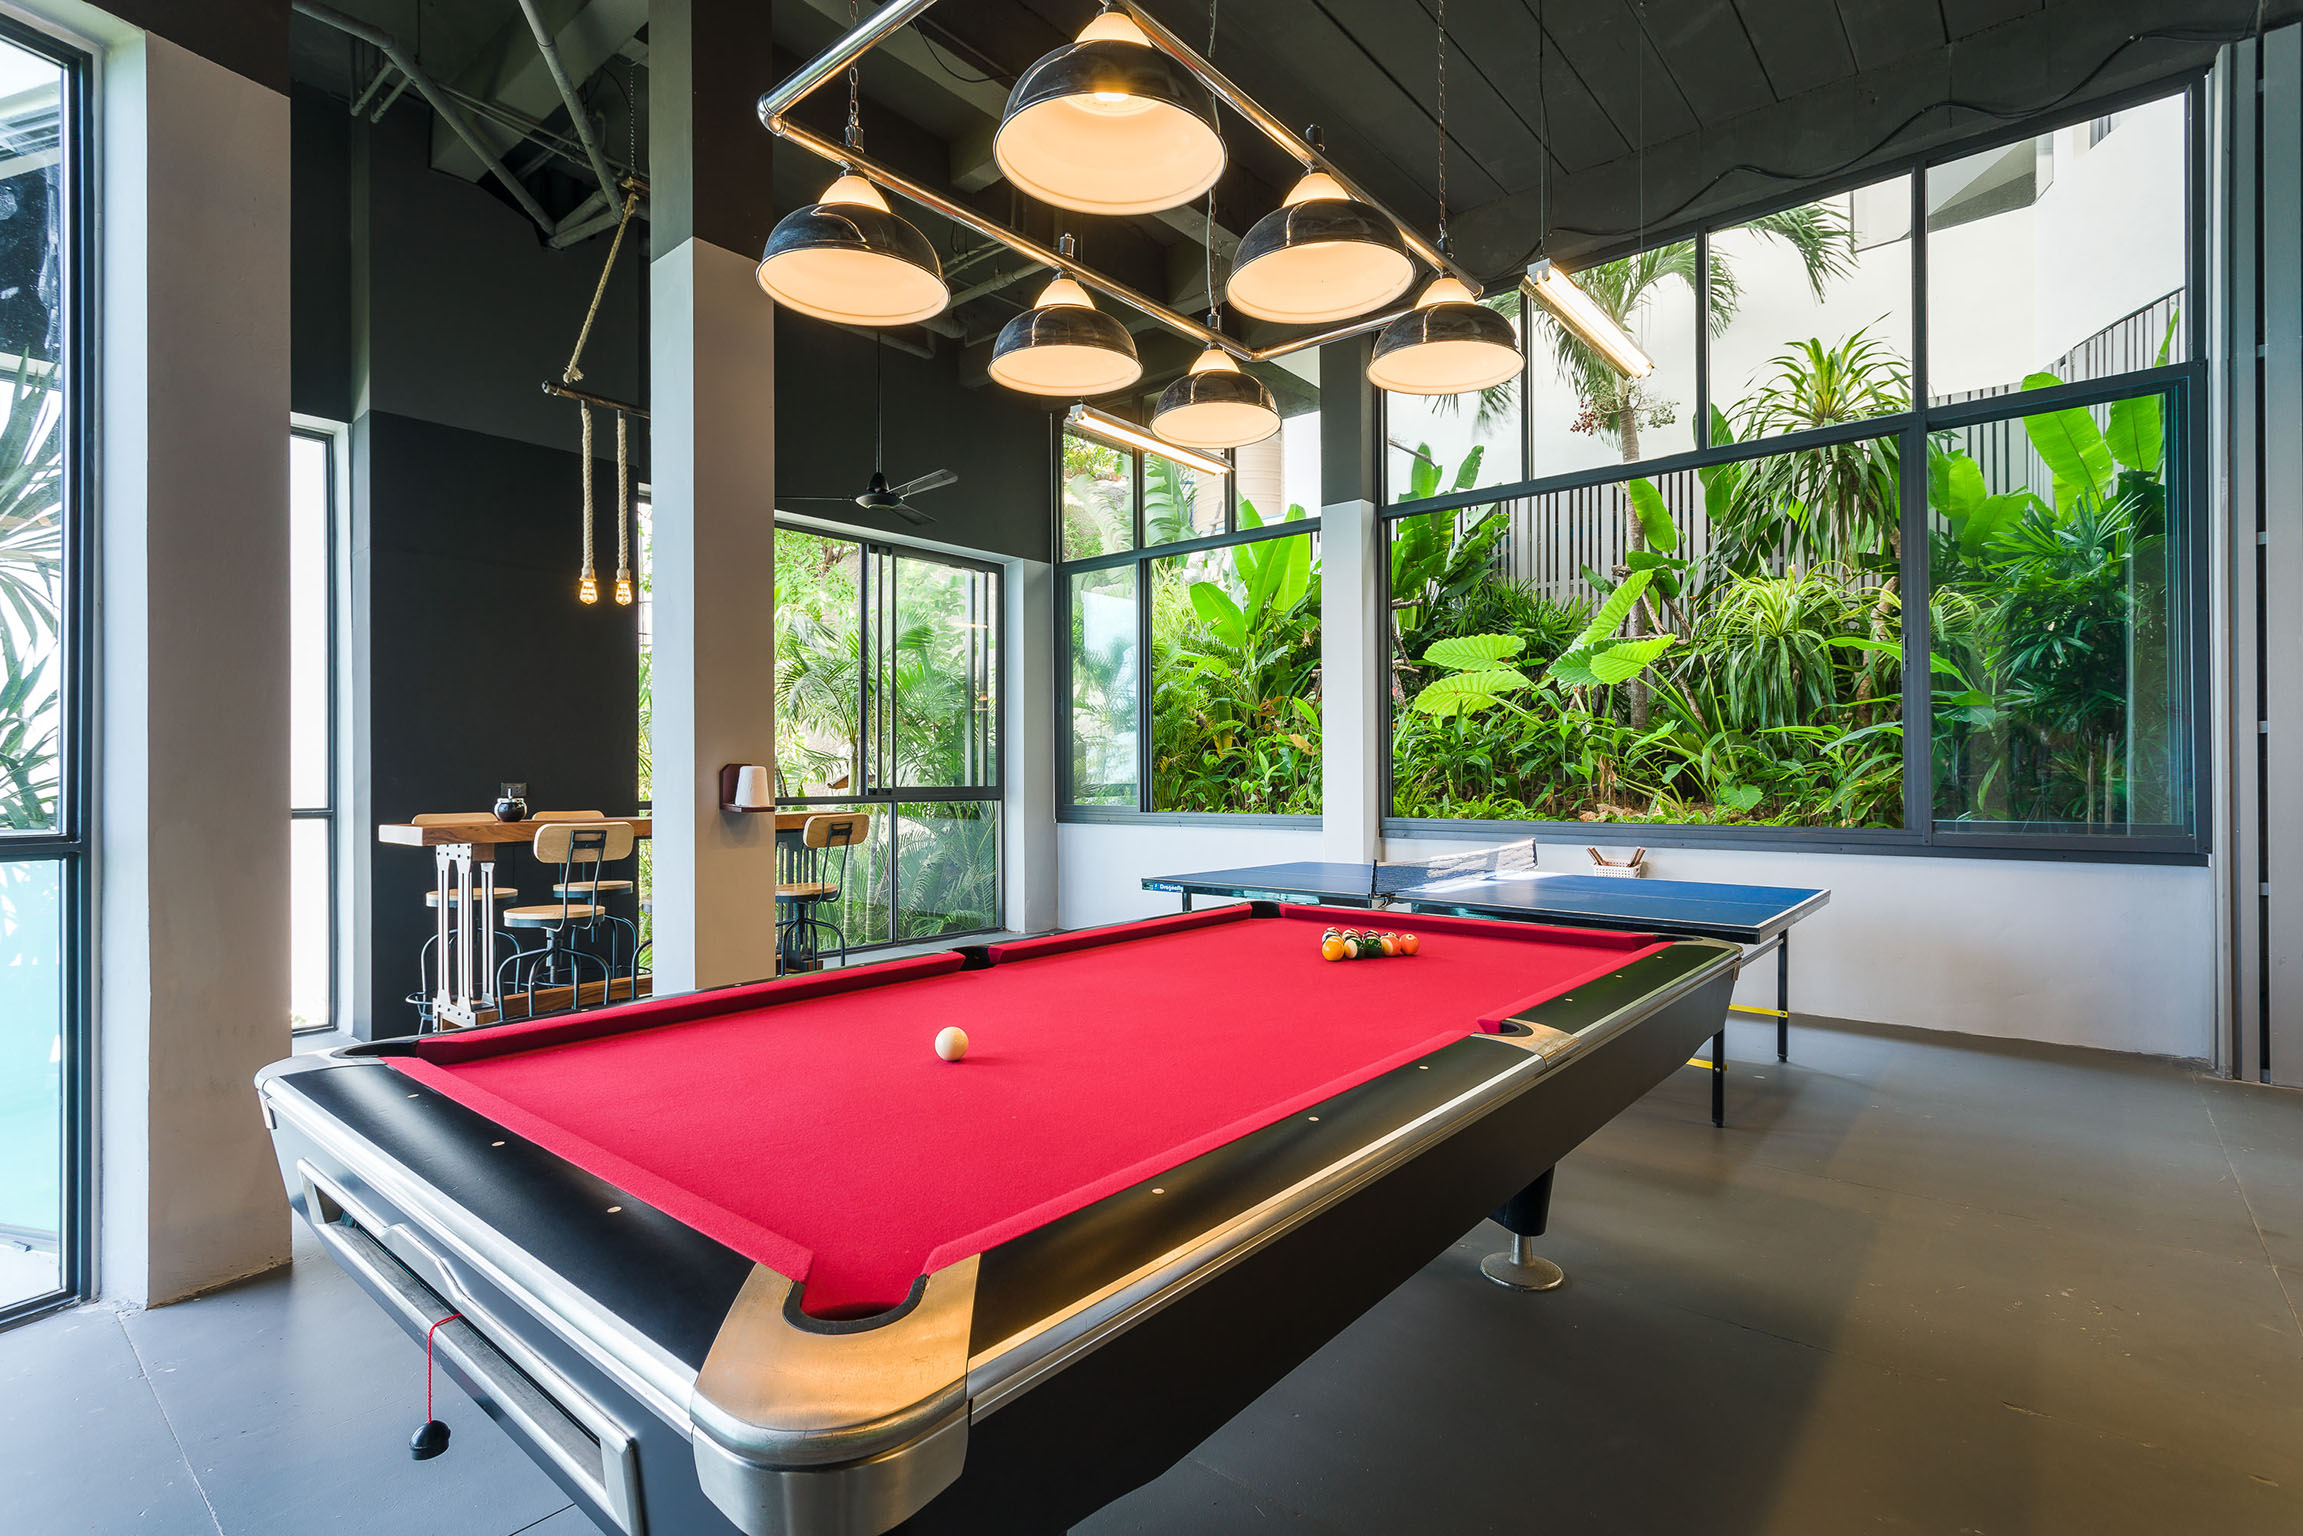 Billiard and table tennis